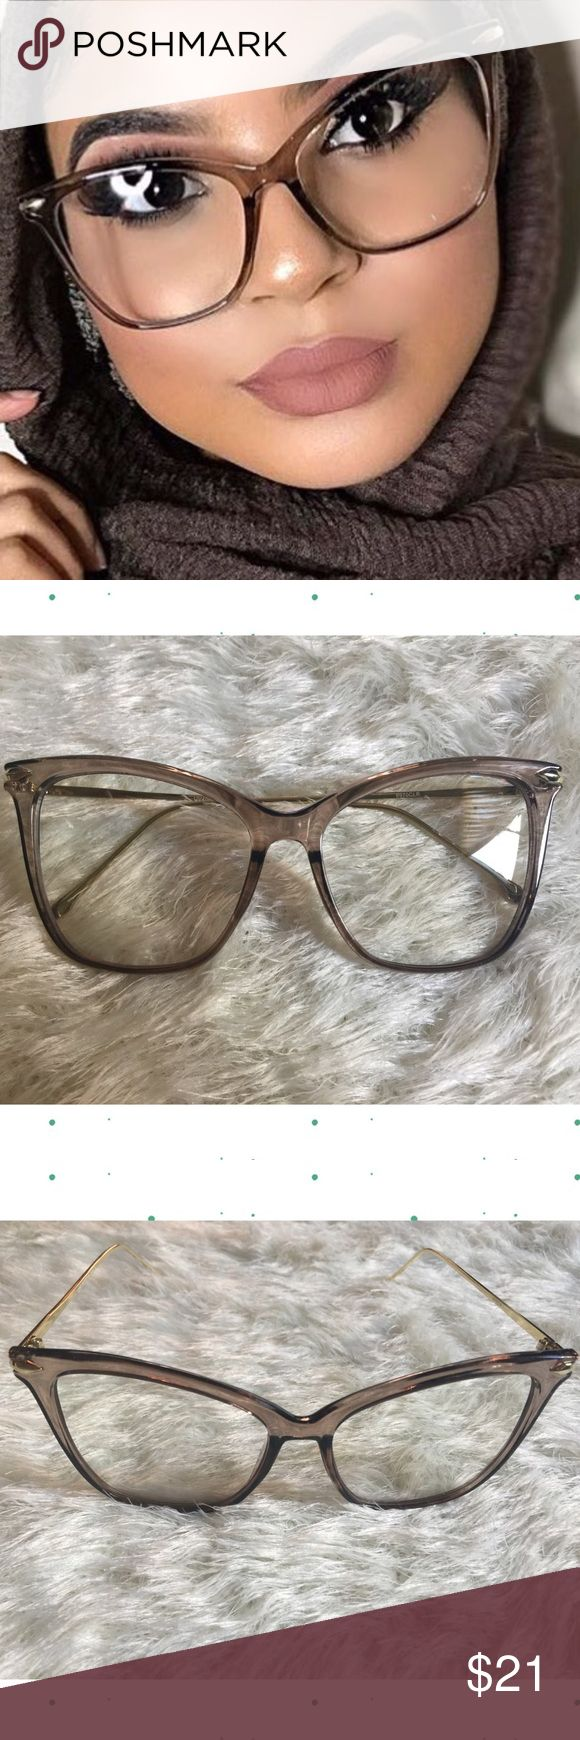 "57mm Taupe Framed Cat Eye Eyeglasses w/ Clear Lens New - Price firm 57mm Taupe Framed Cat Eye Eyeglasses w/ Clear Lens. Non Prescription Clear Lens  ​* Contemporary Cat Eye Silhouette ​* Glossy Metal Temples  ​* Polycarbonate Clear Lens​ * Acetate Hand Polished Frame  57mm(W) 49mm(H) 18mm(BR) 147mm Total Frame. Microfiber eyeglass Bag included (color will vary).                                ❌Trades ❌Holds ❌ Lowball Offers ✅ Use the ""ADD TO BUNDLE"" link to get 15% off discount on 2+ items…"